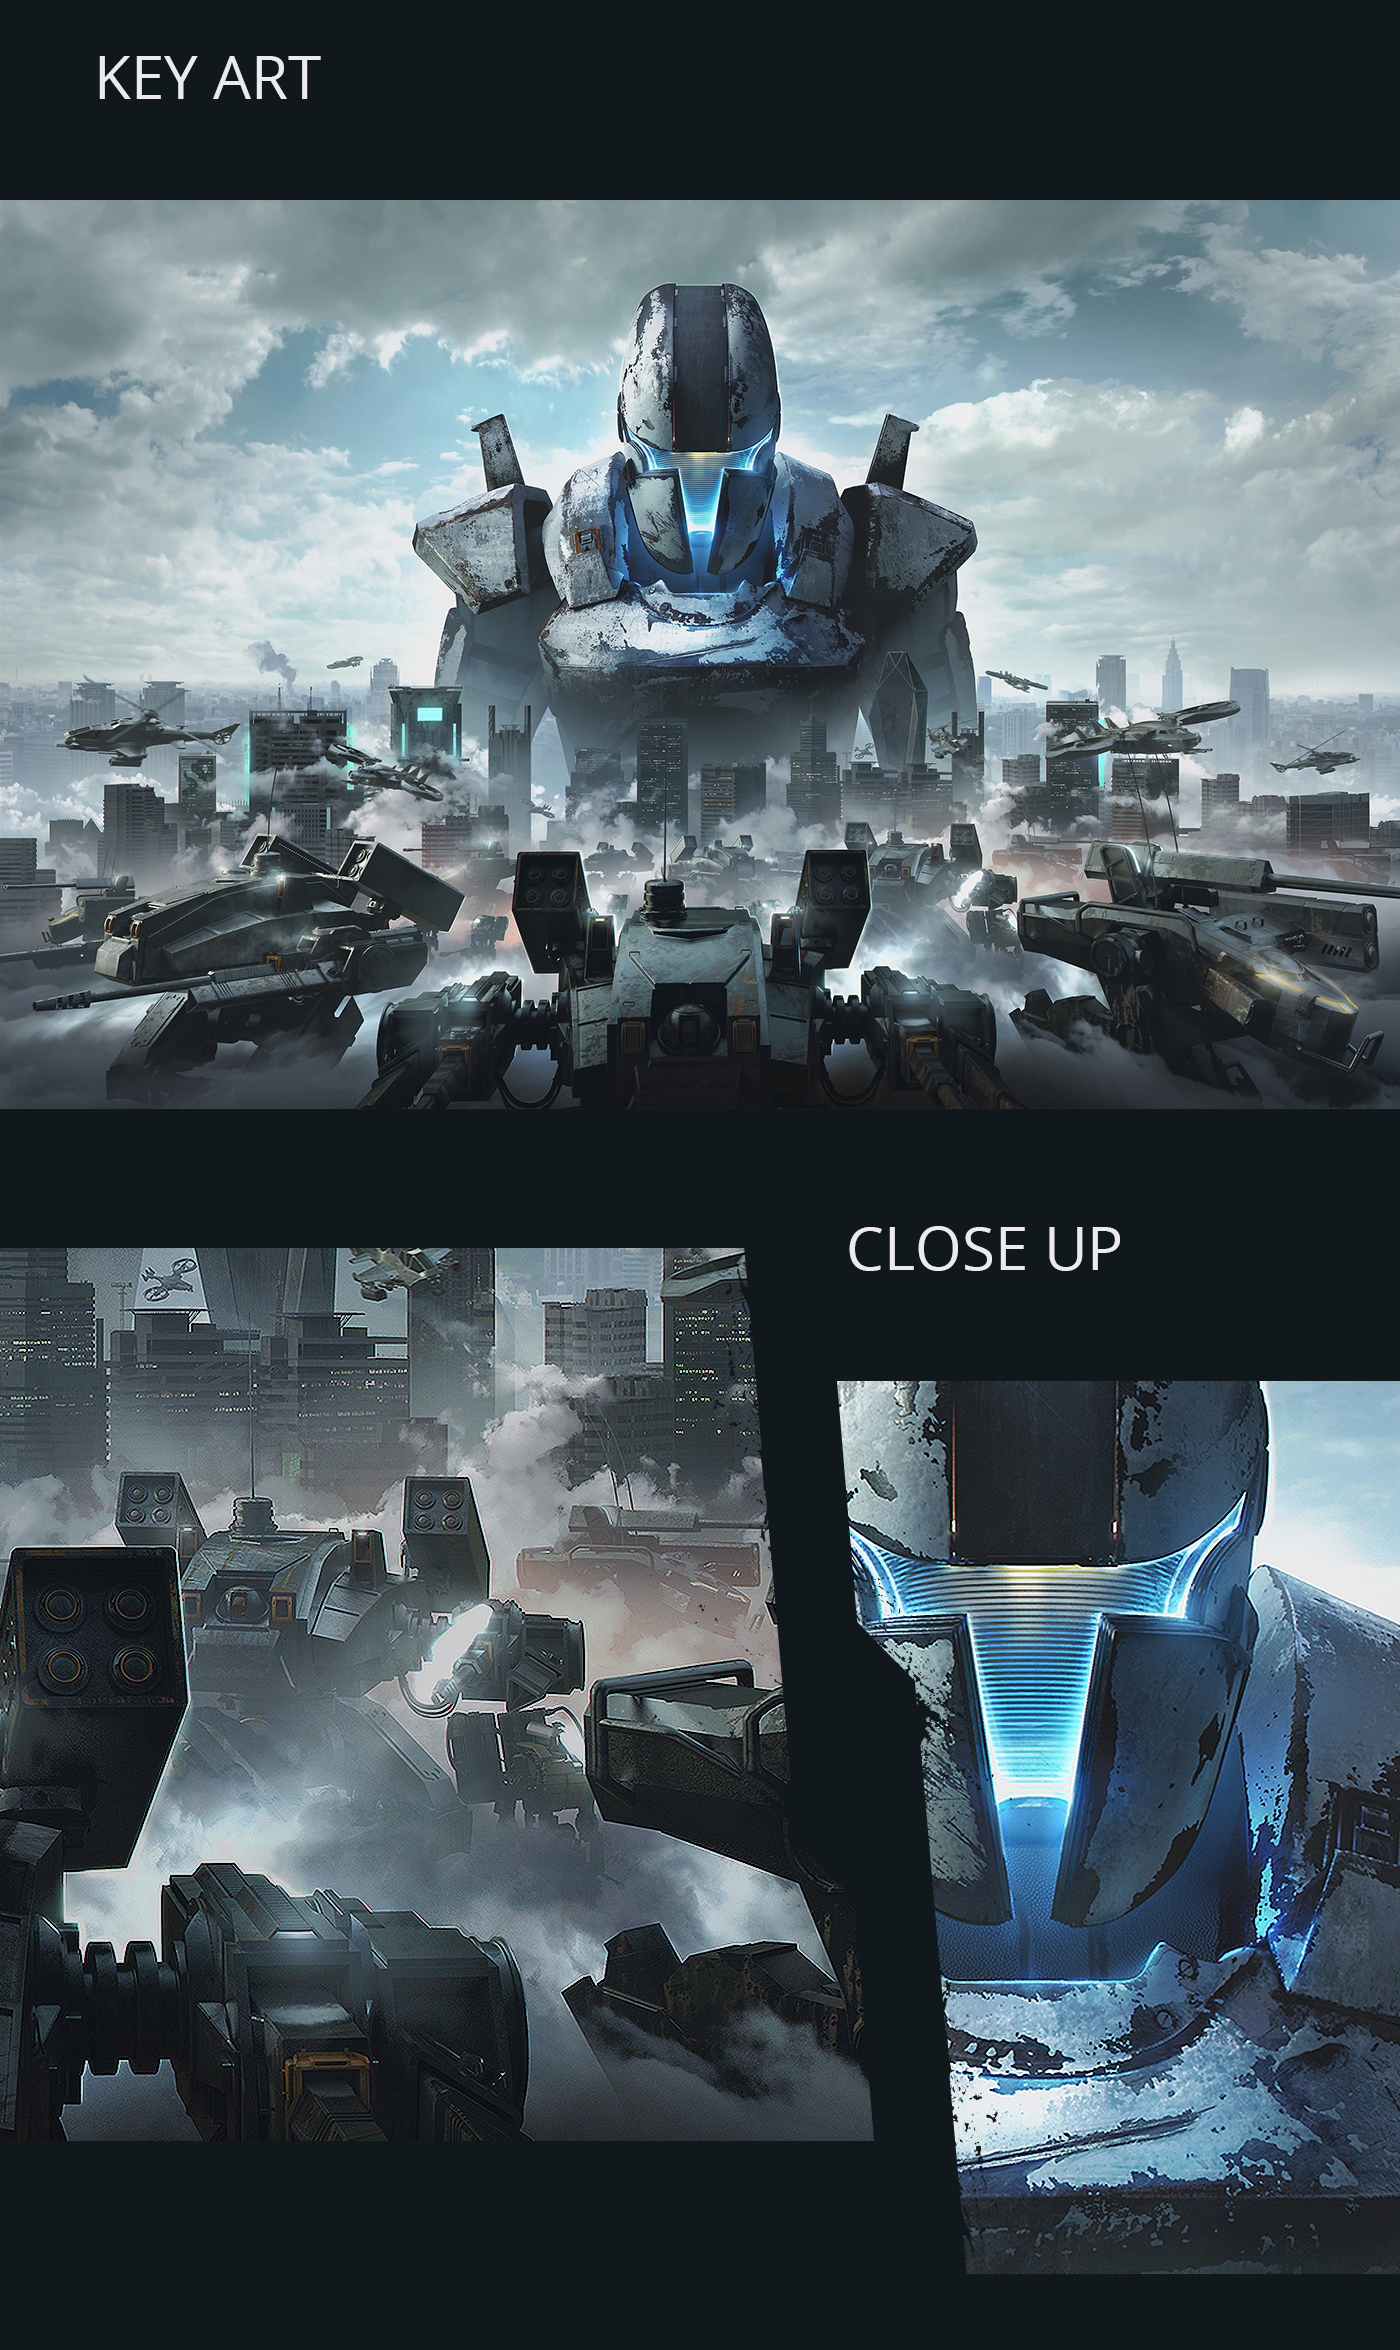 Behance 为您呈现 Wargaming, War, Setting objectives